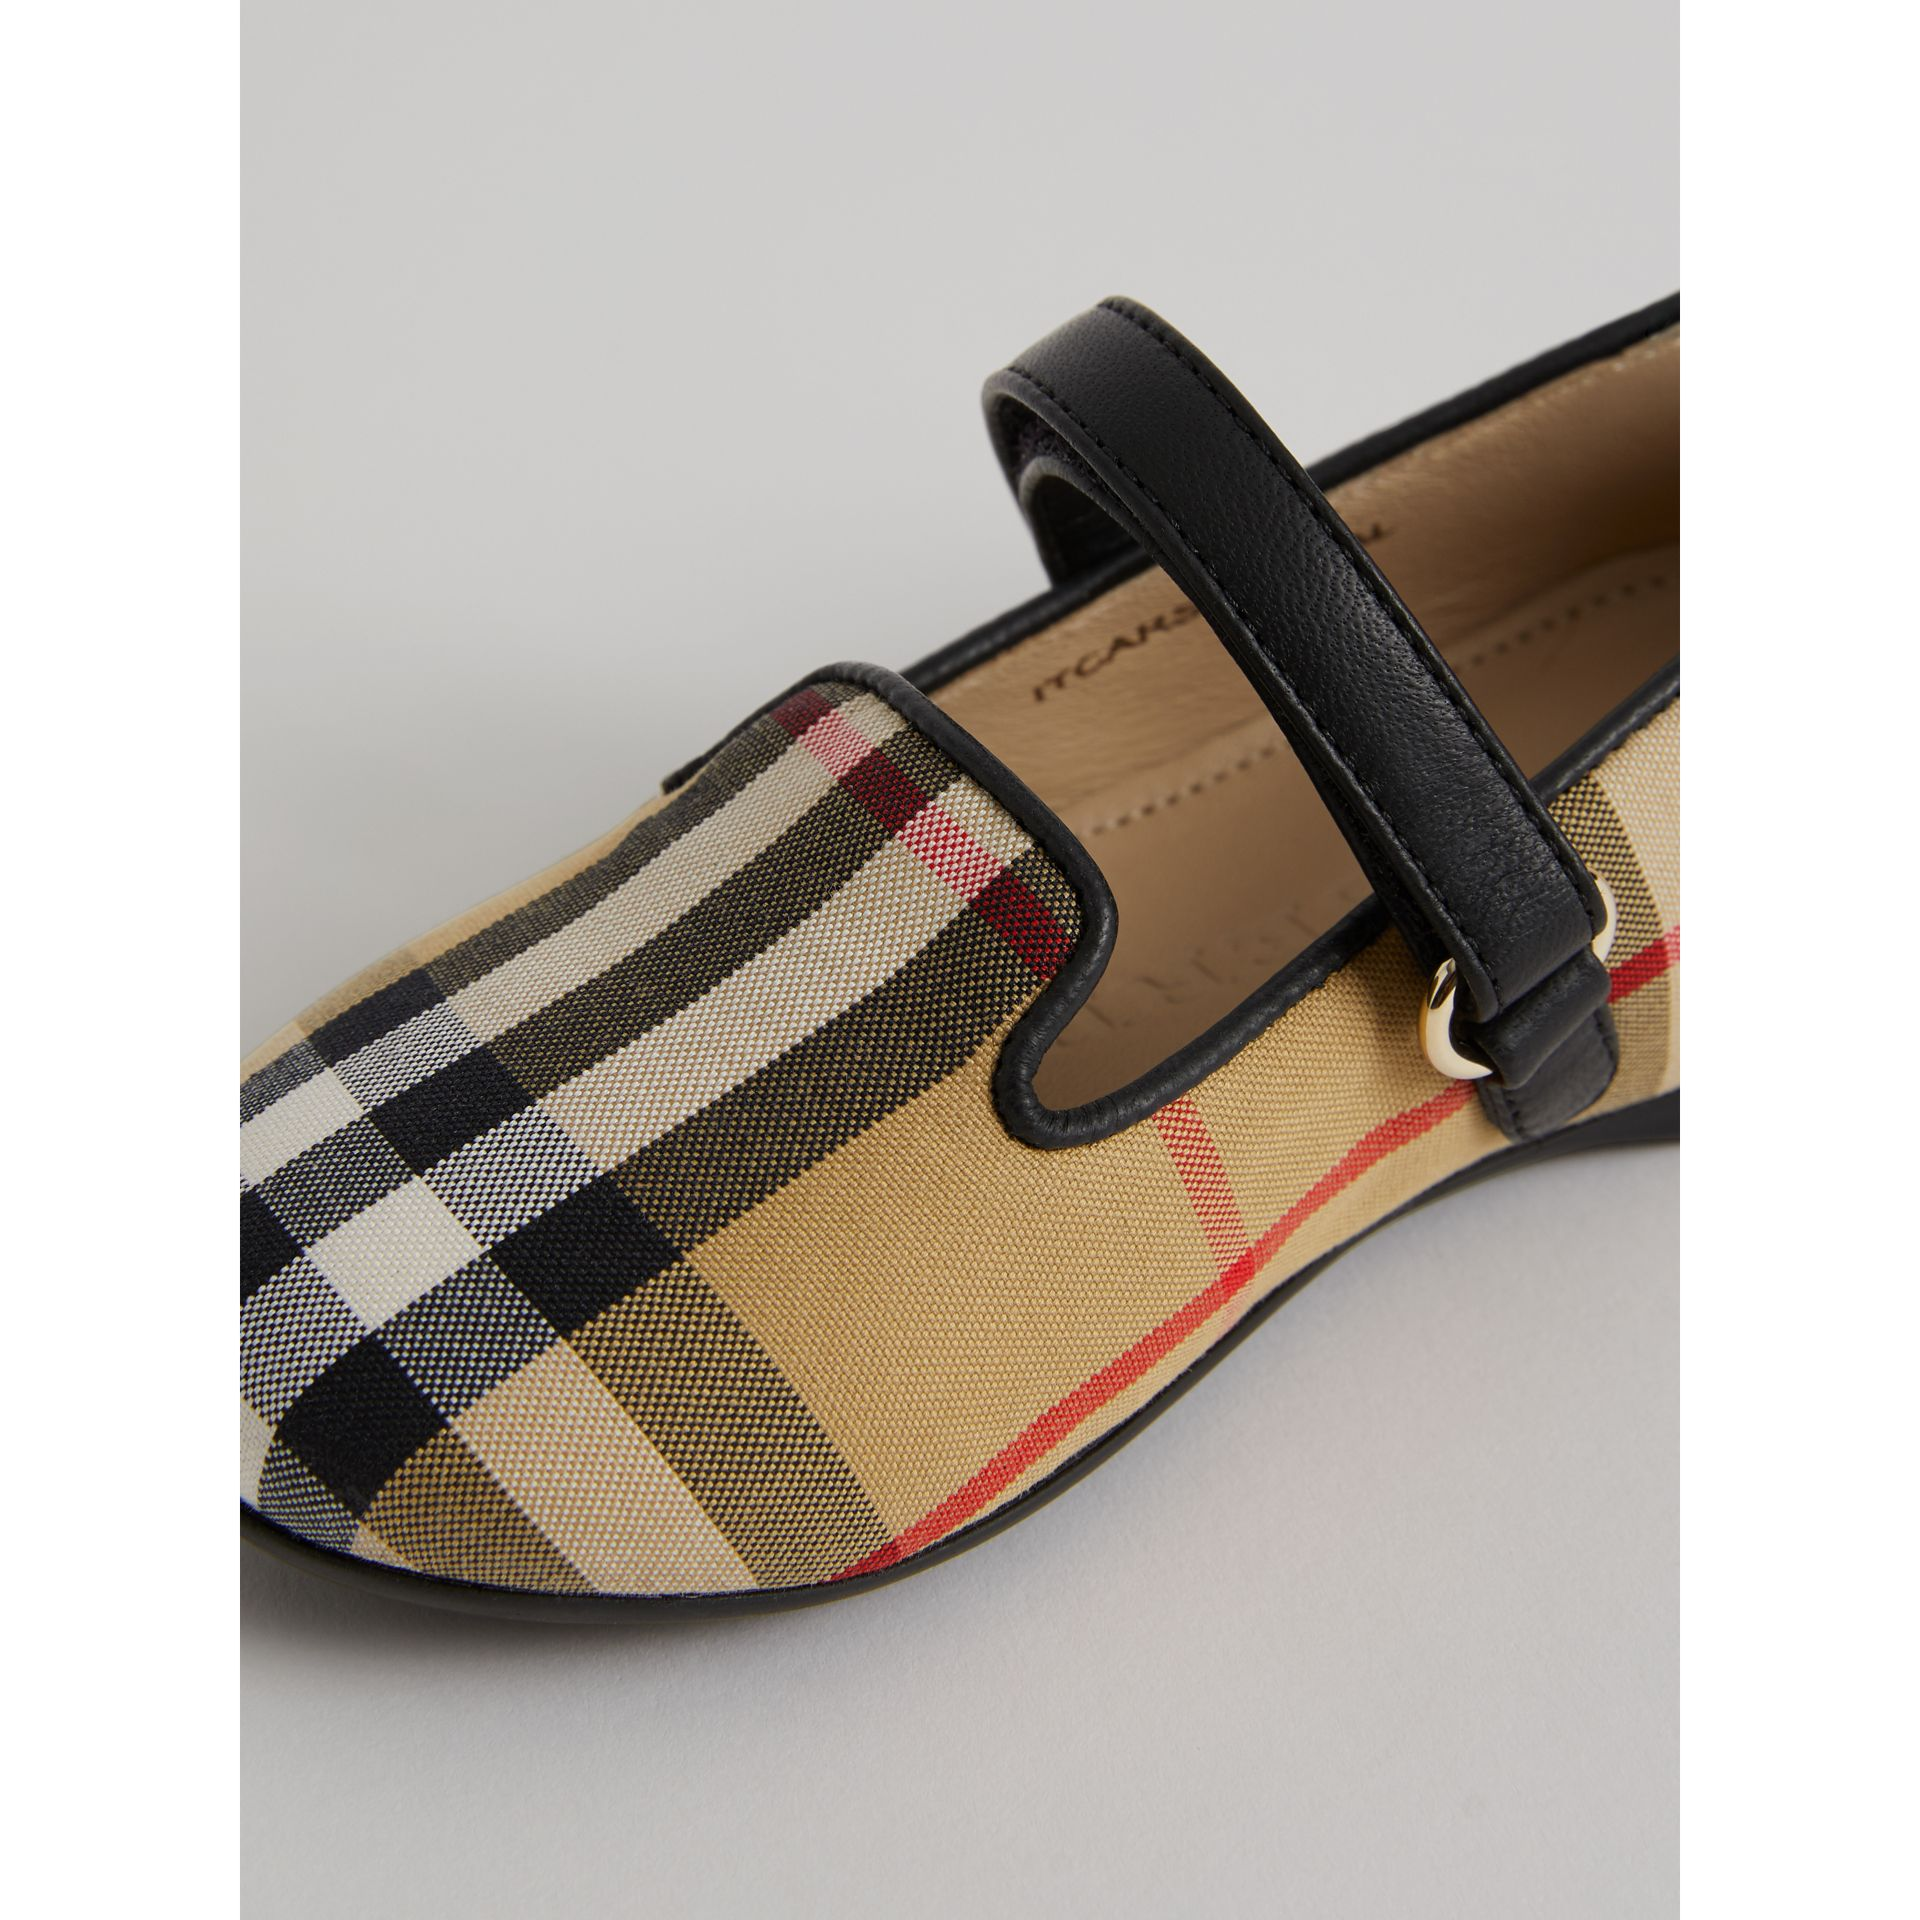 Slipper im Vintage Check-Design mit D-Ring-Riemen (Antikgelb) - Kinder | Burberry - Galerie-Bild 1